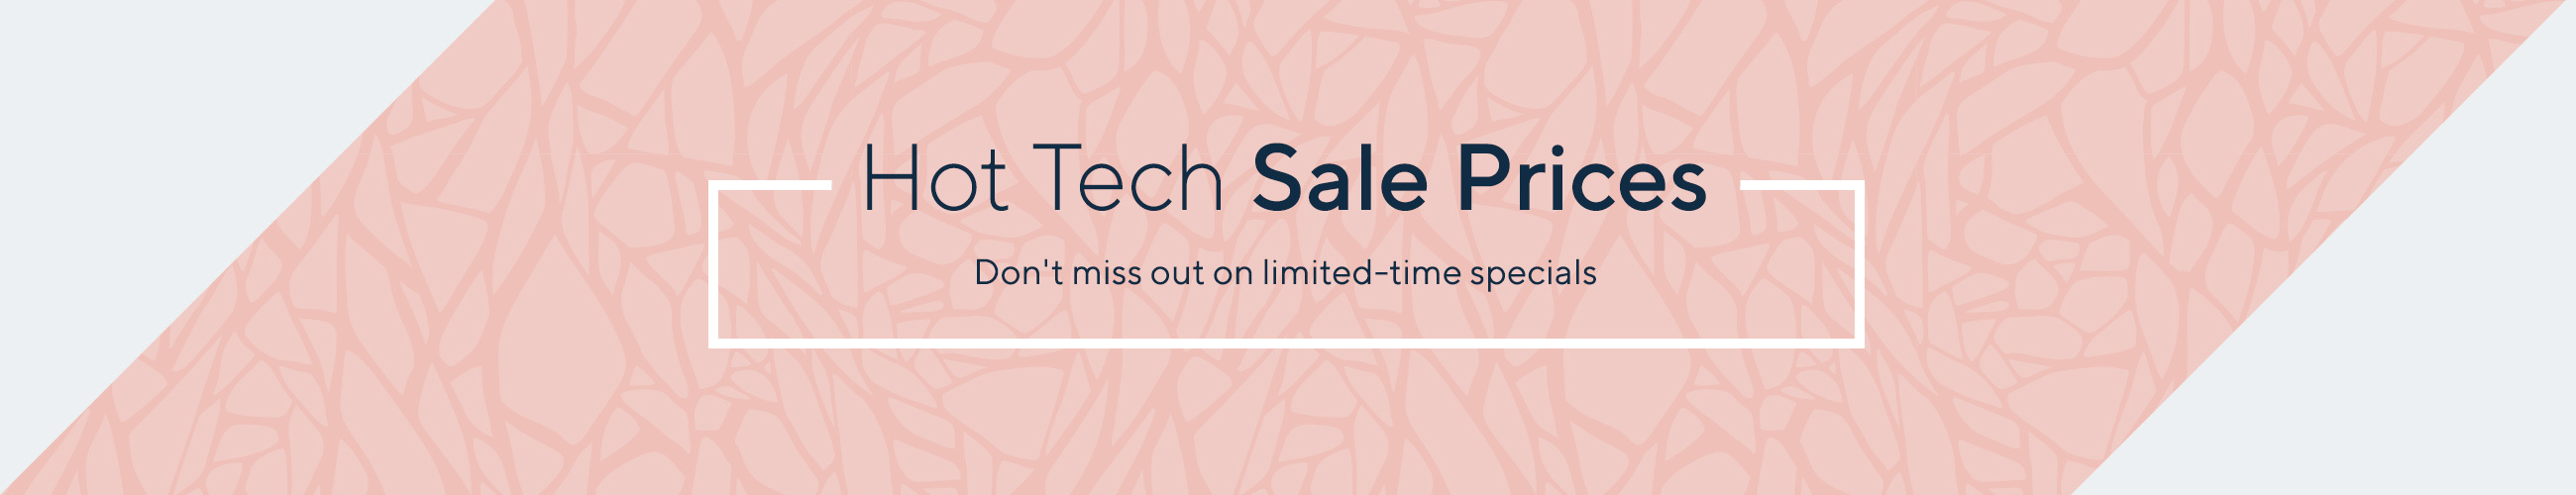 Hot Tech Sale Prices  Don't miss out on limited-time specials